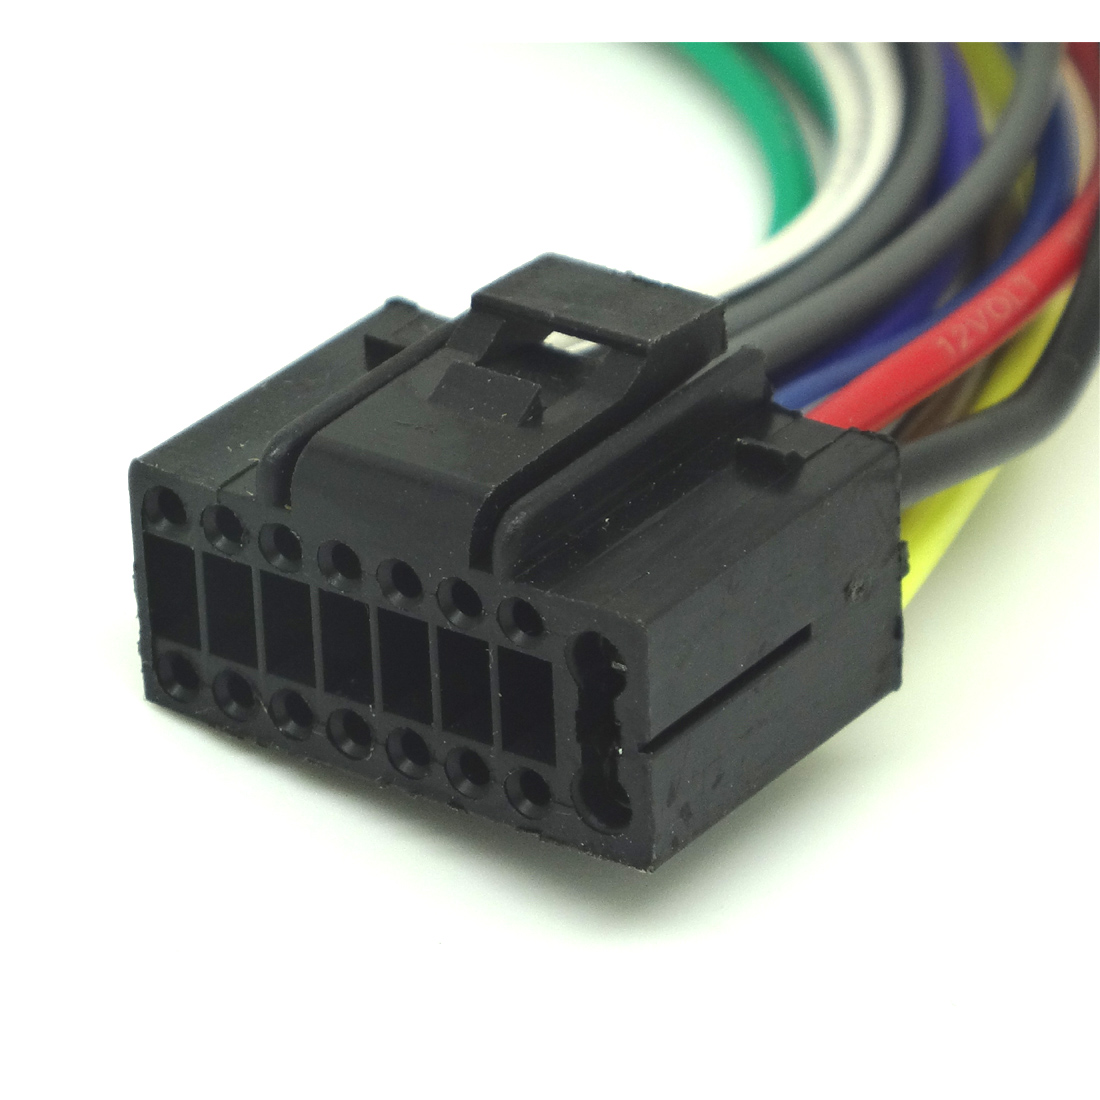 small resolution of player 16 pin radio car audio stereo wire harness for kenwood kdcplayer 16 pin radio car